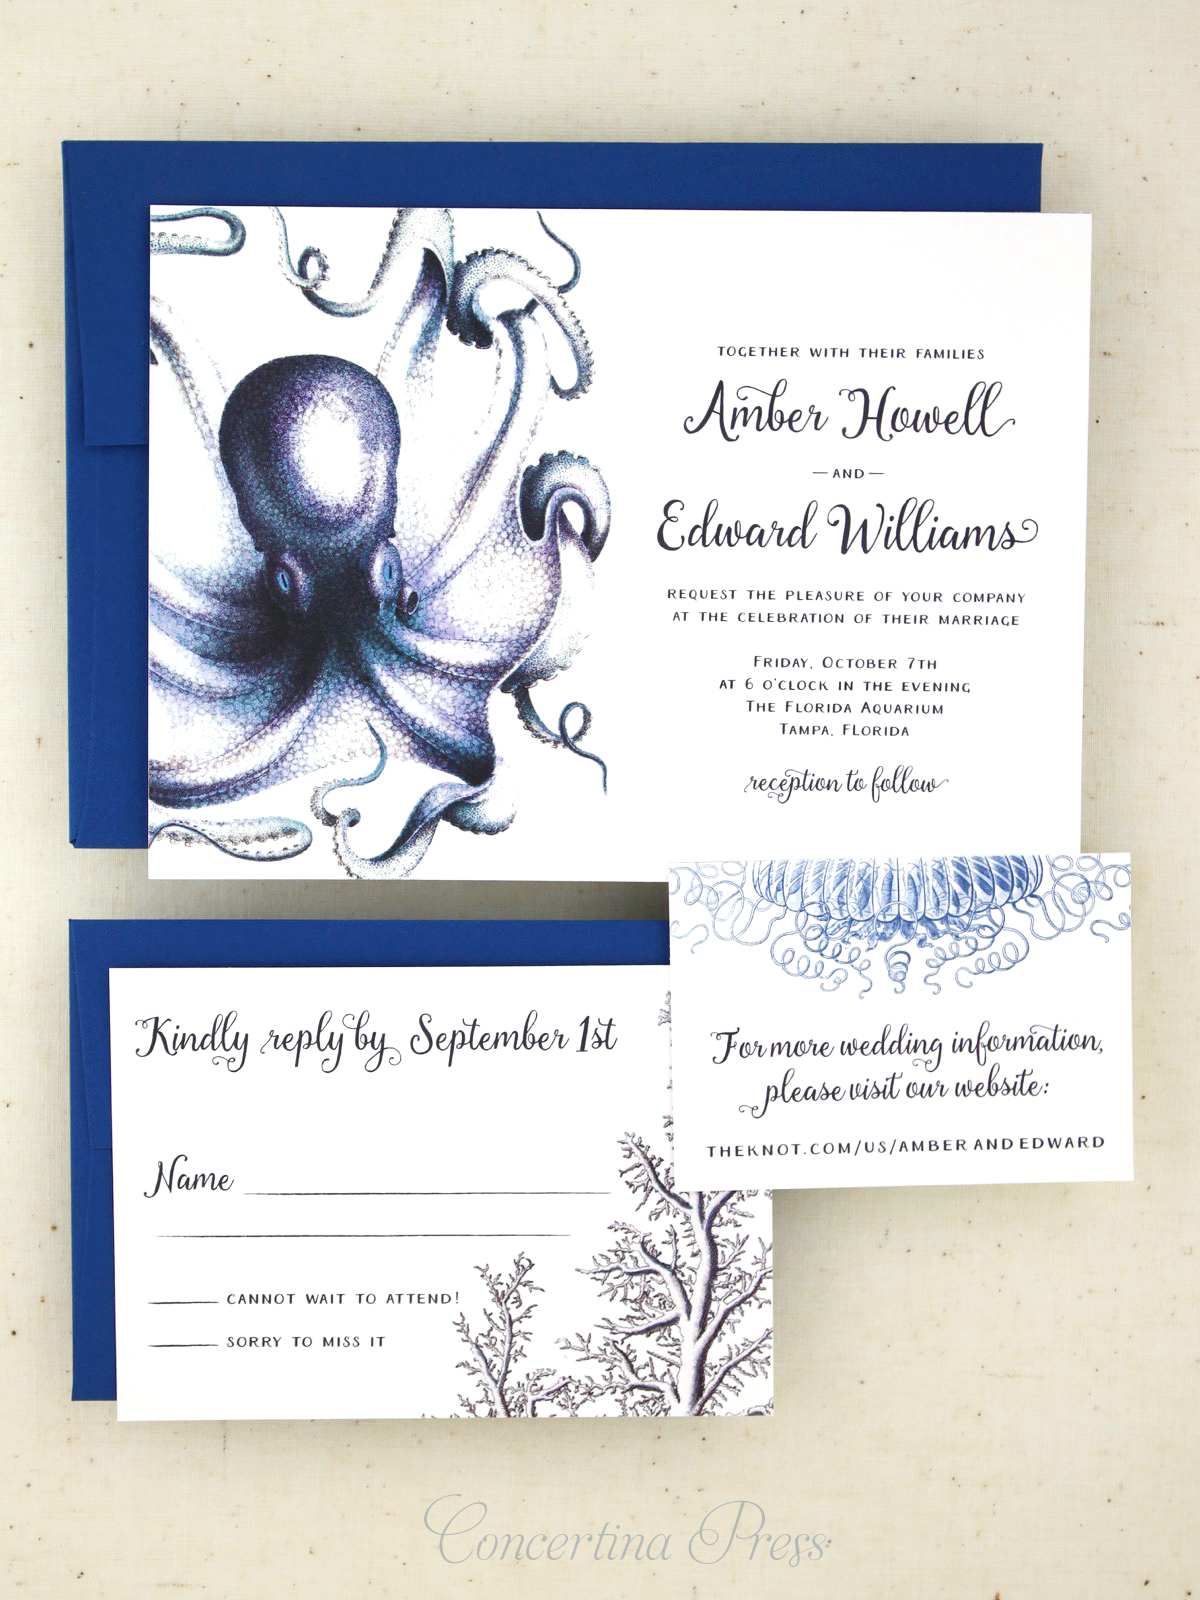 Nautical Cabinet of Curiosities Octopus Wedding Invitations from Concertina Press